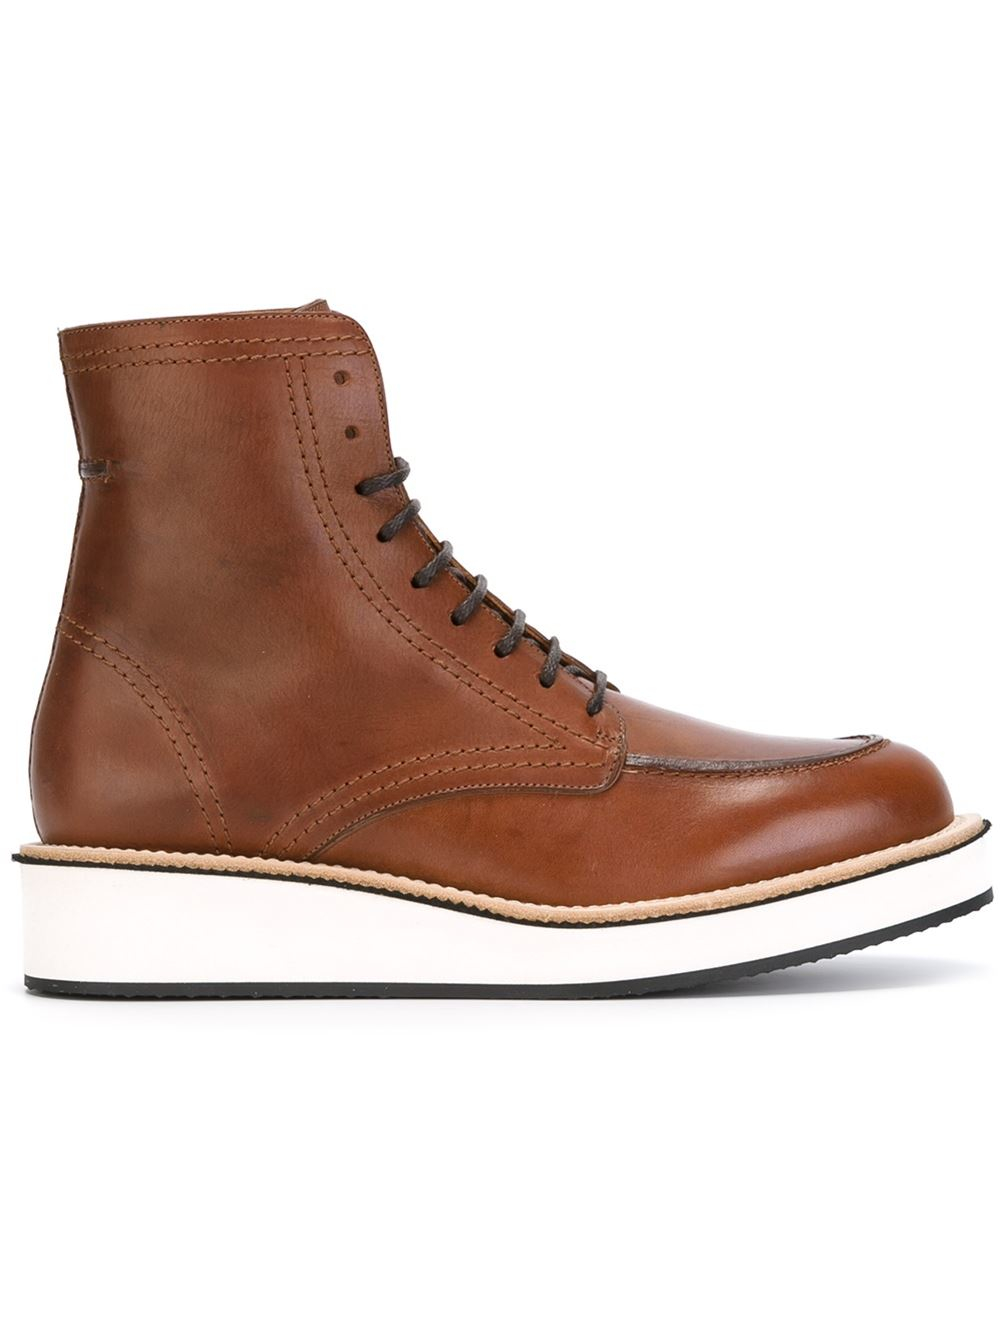 Shop the latest selection of Brown Mens Lace-Up Shoes at Stylight: Best sellers of up to −66% products brands» Browse now!